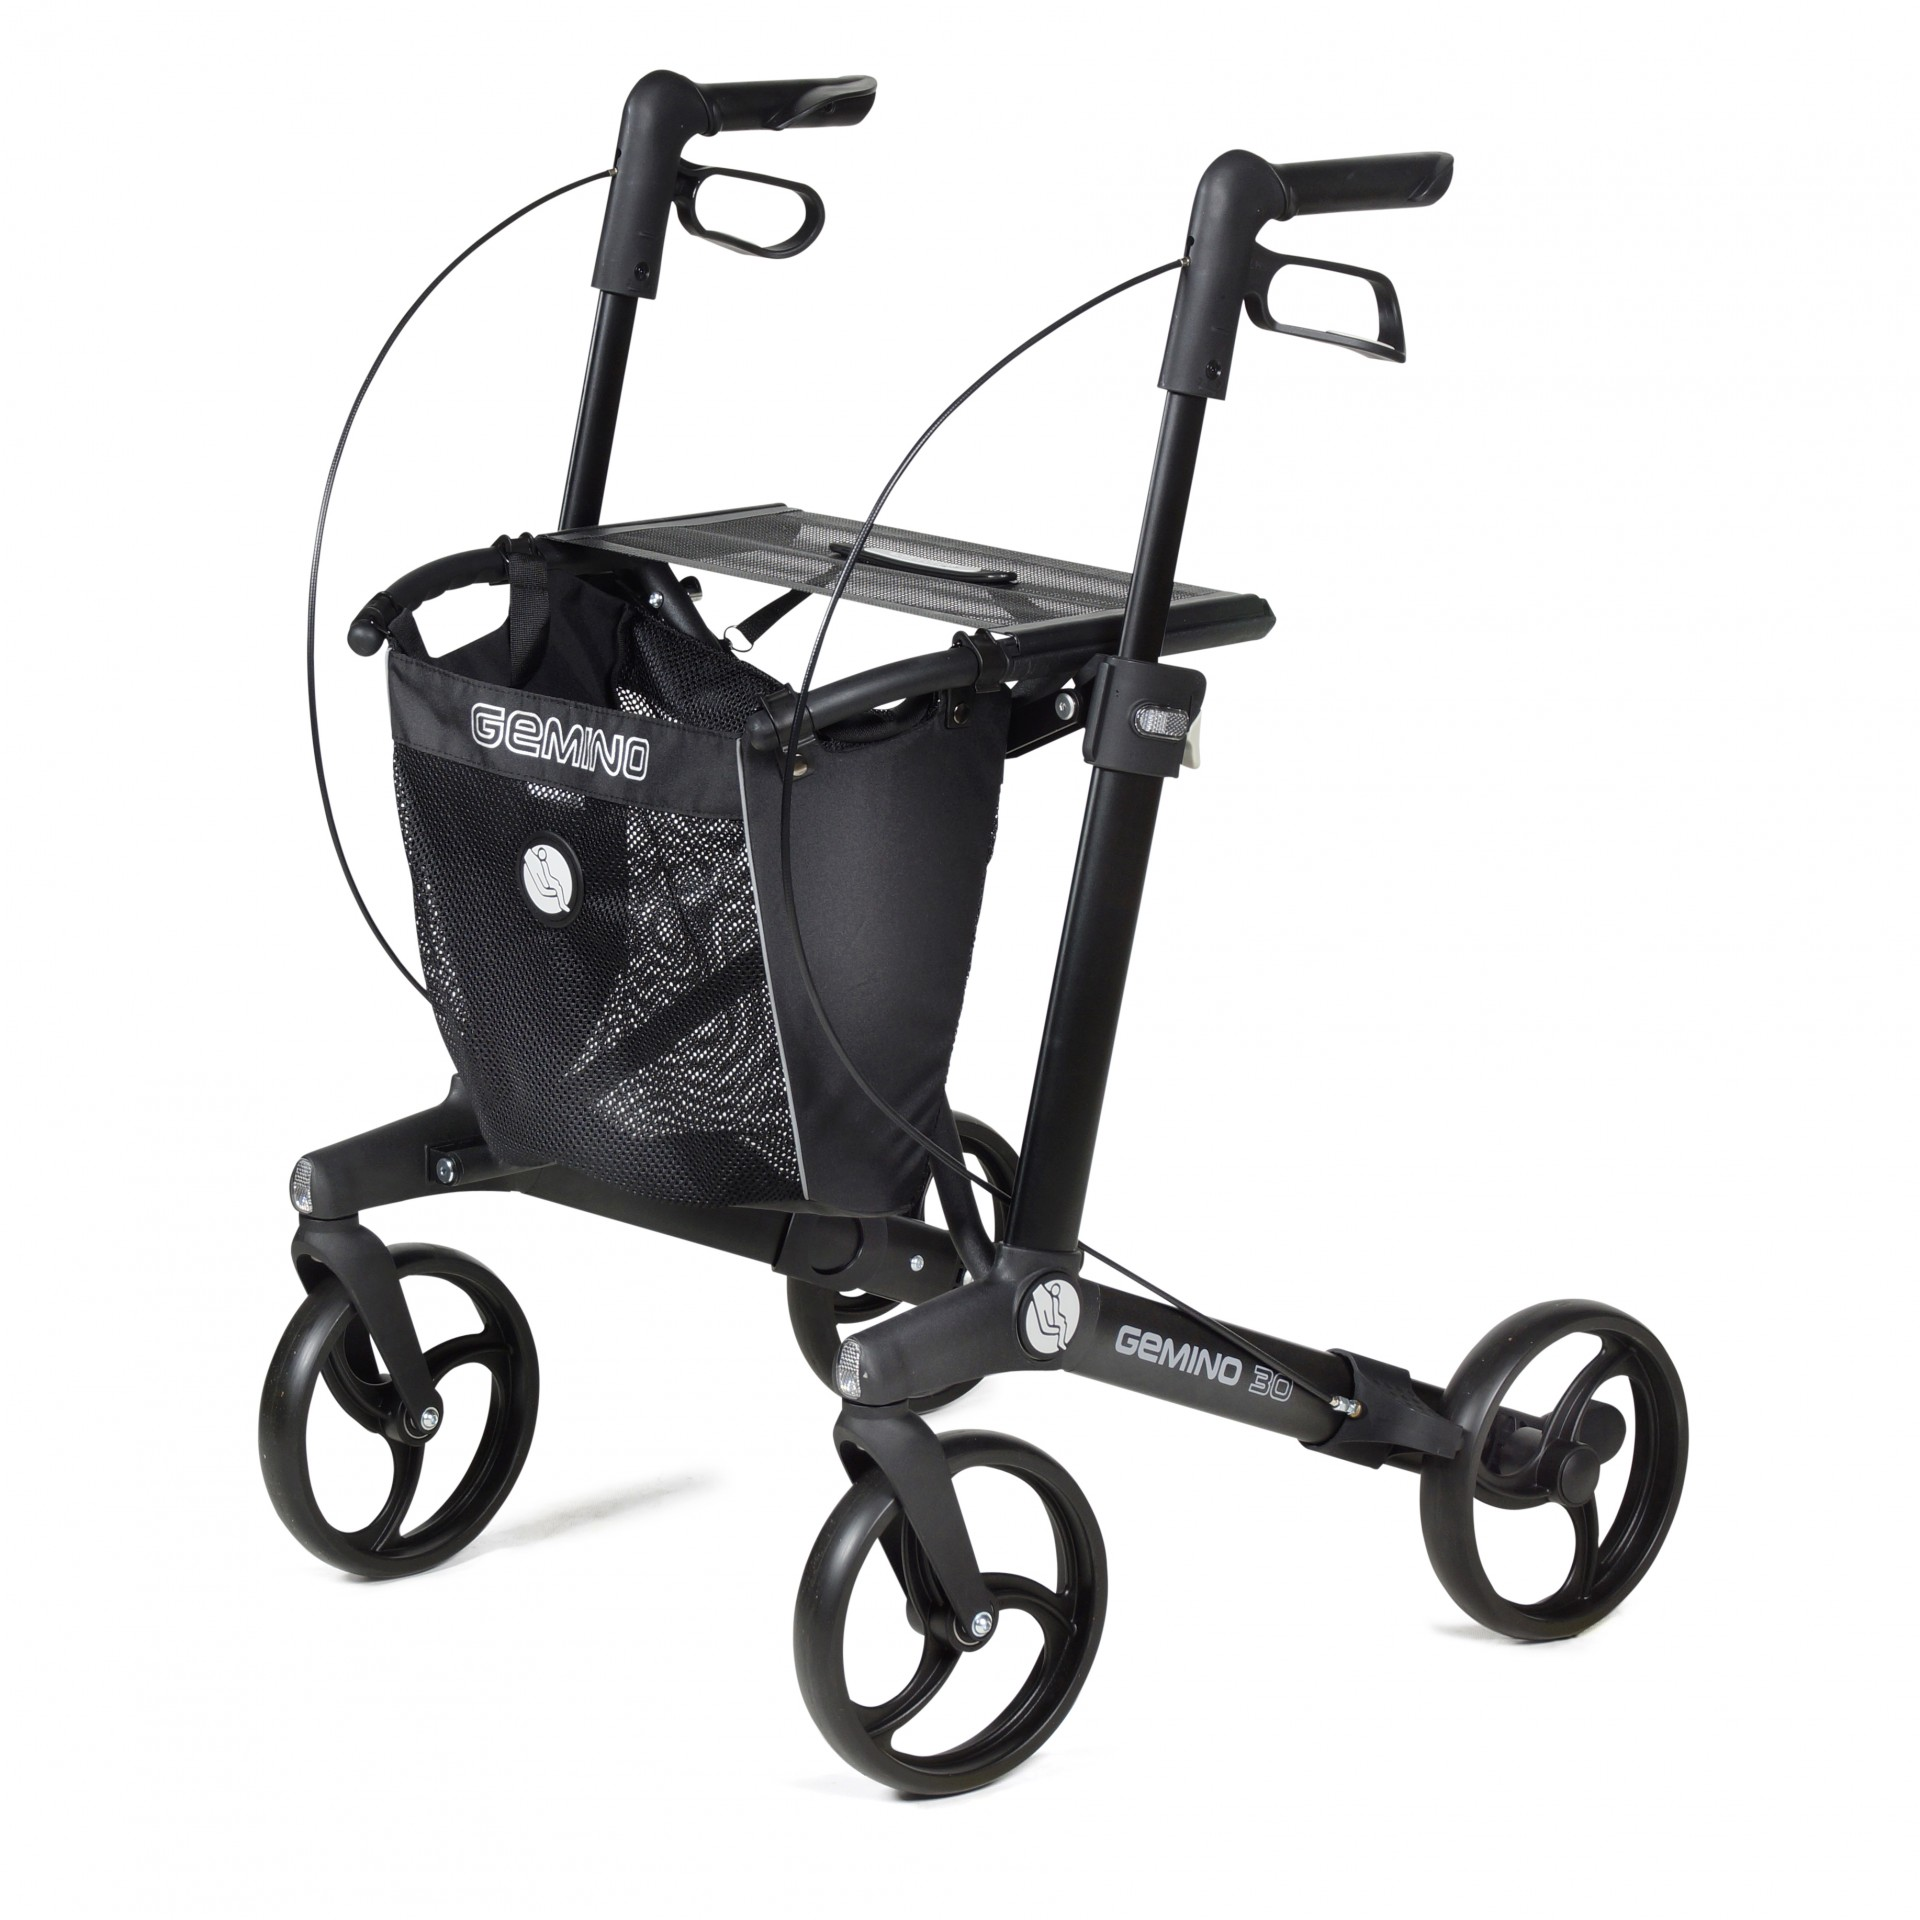 Gemino 30 rollator van Sunrise Medical in zwart